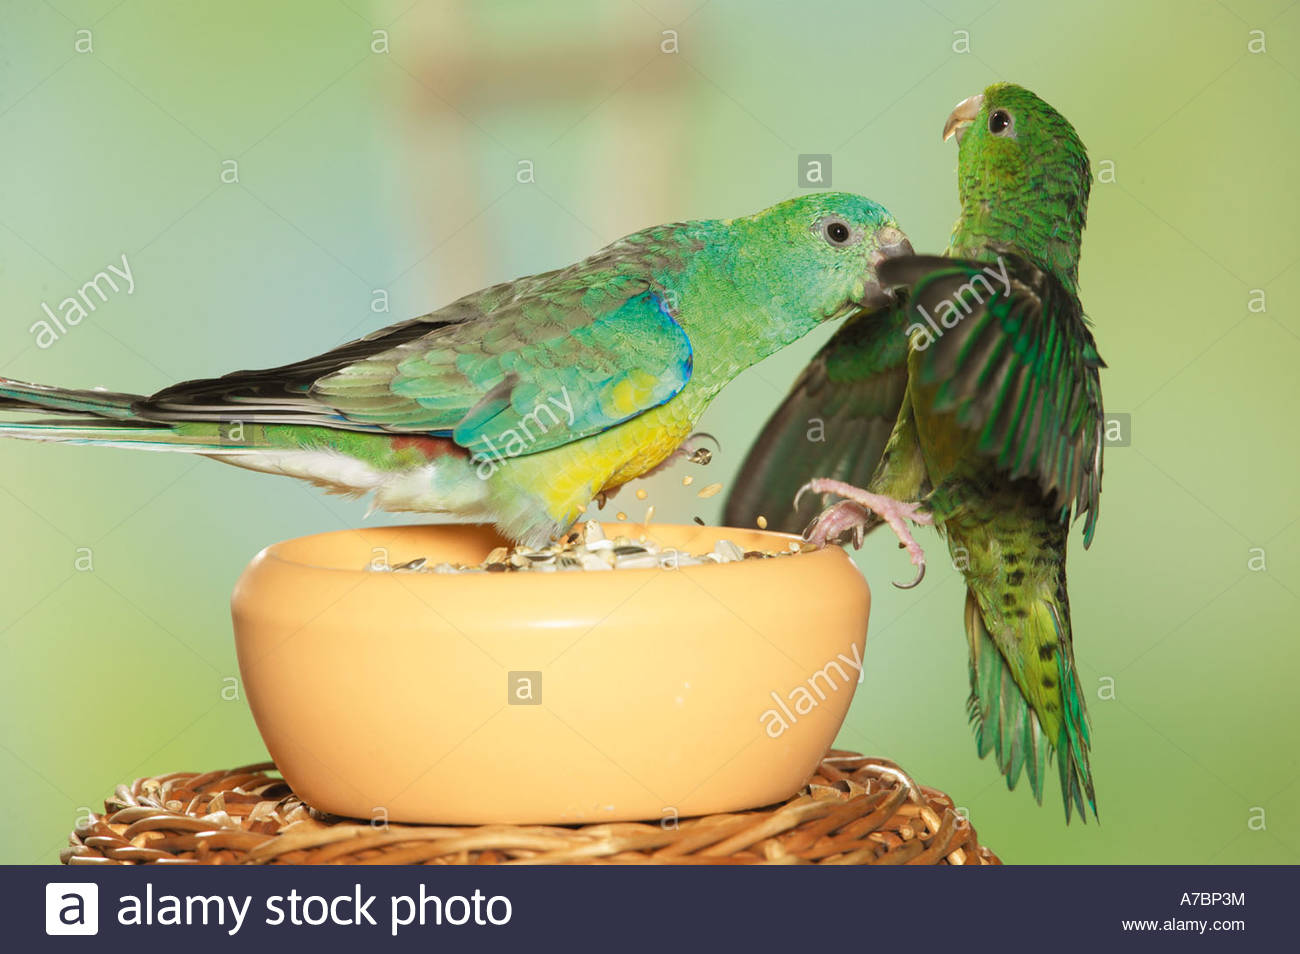 Red-rumped Parrot clipart #7, Download drawings